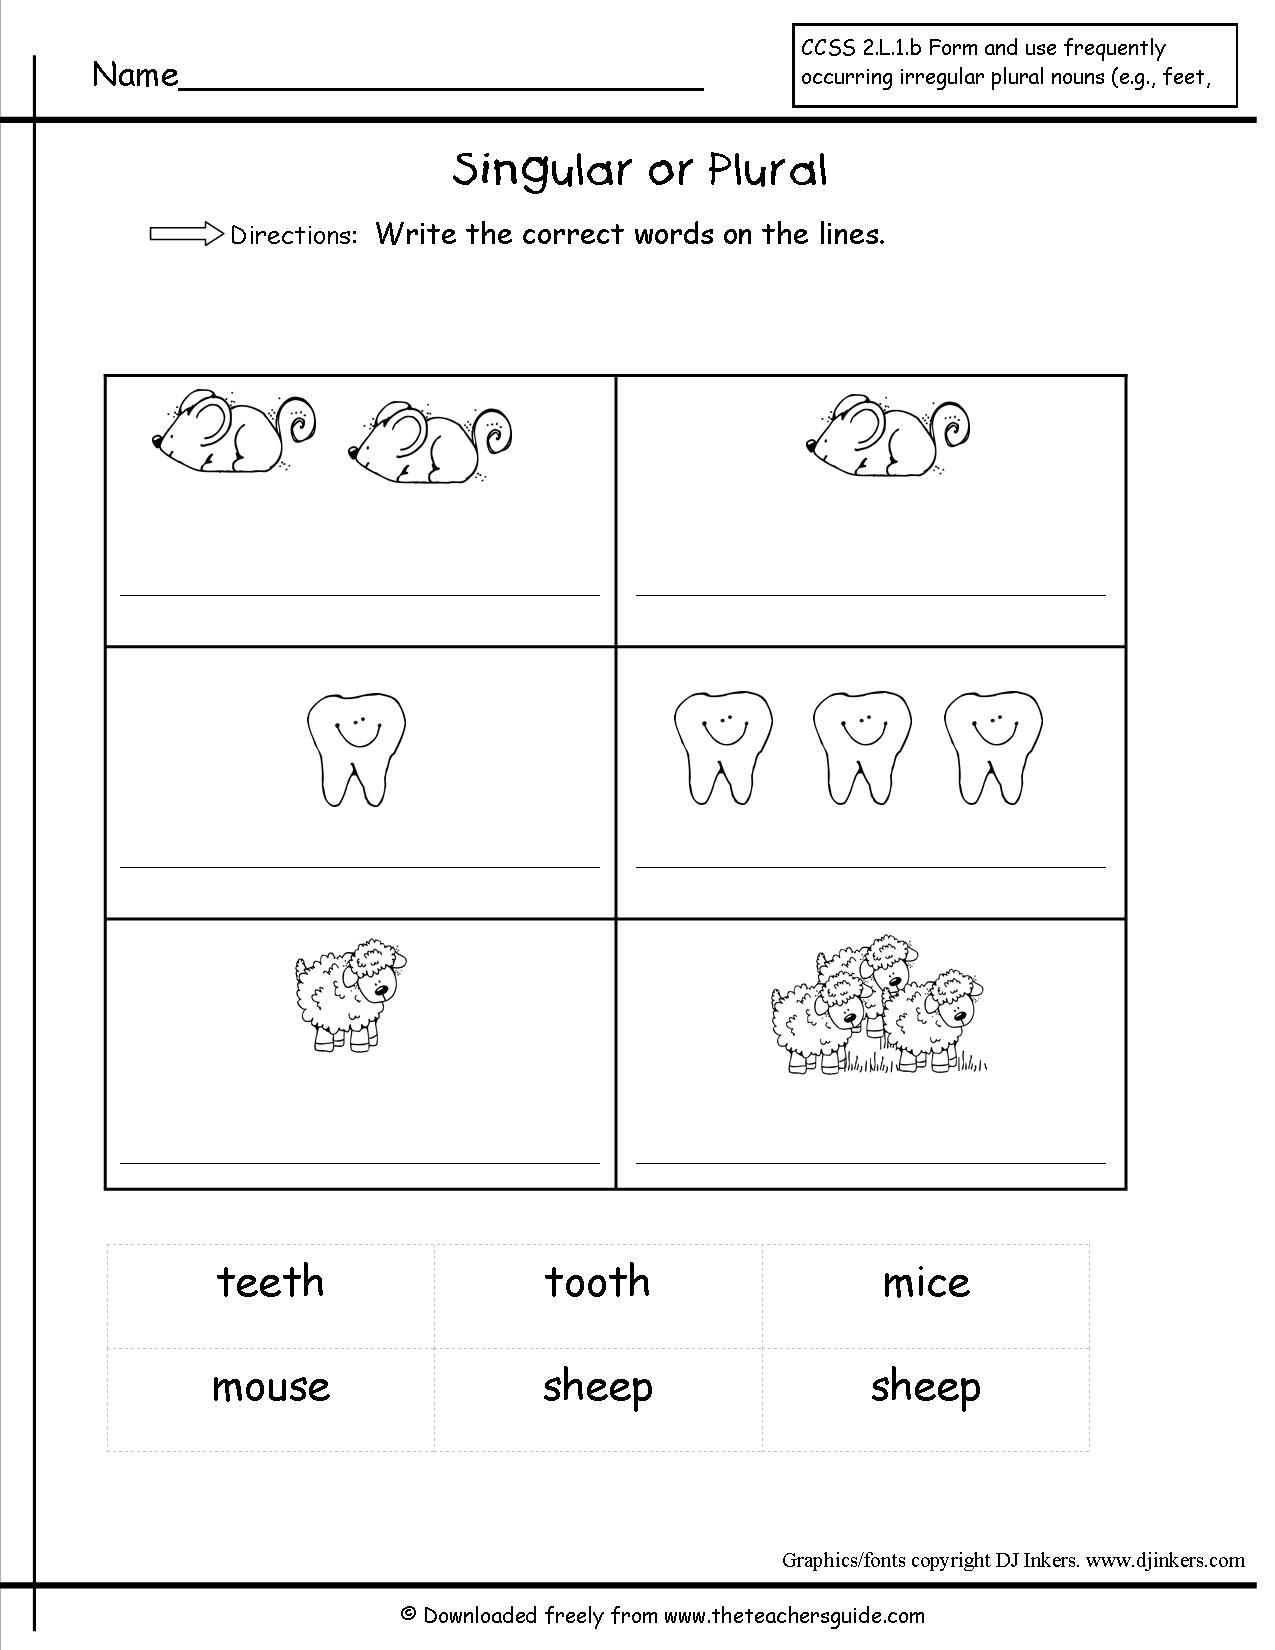 Singular and Plural Nouns Worksheets from The Teacher's